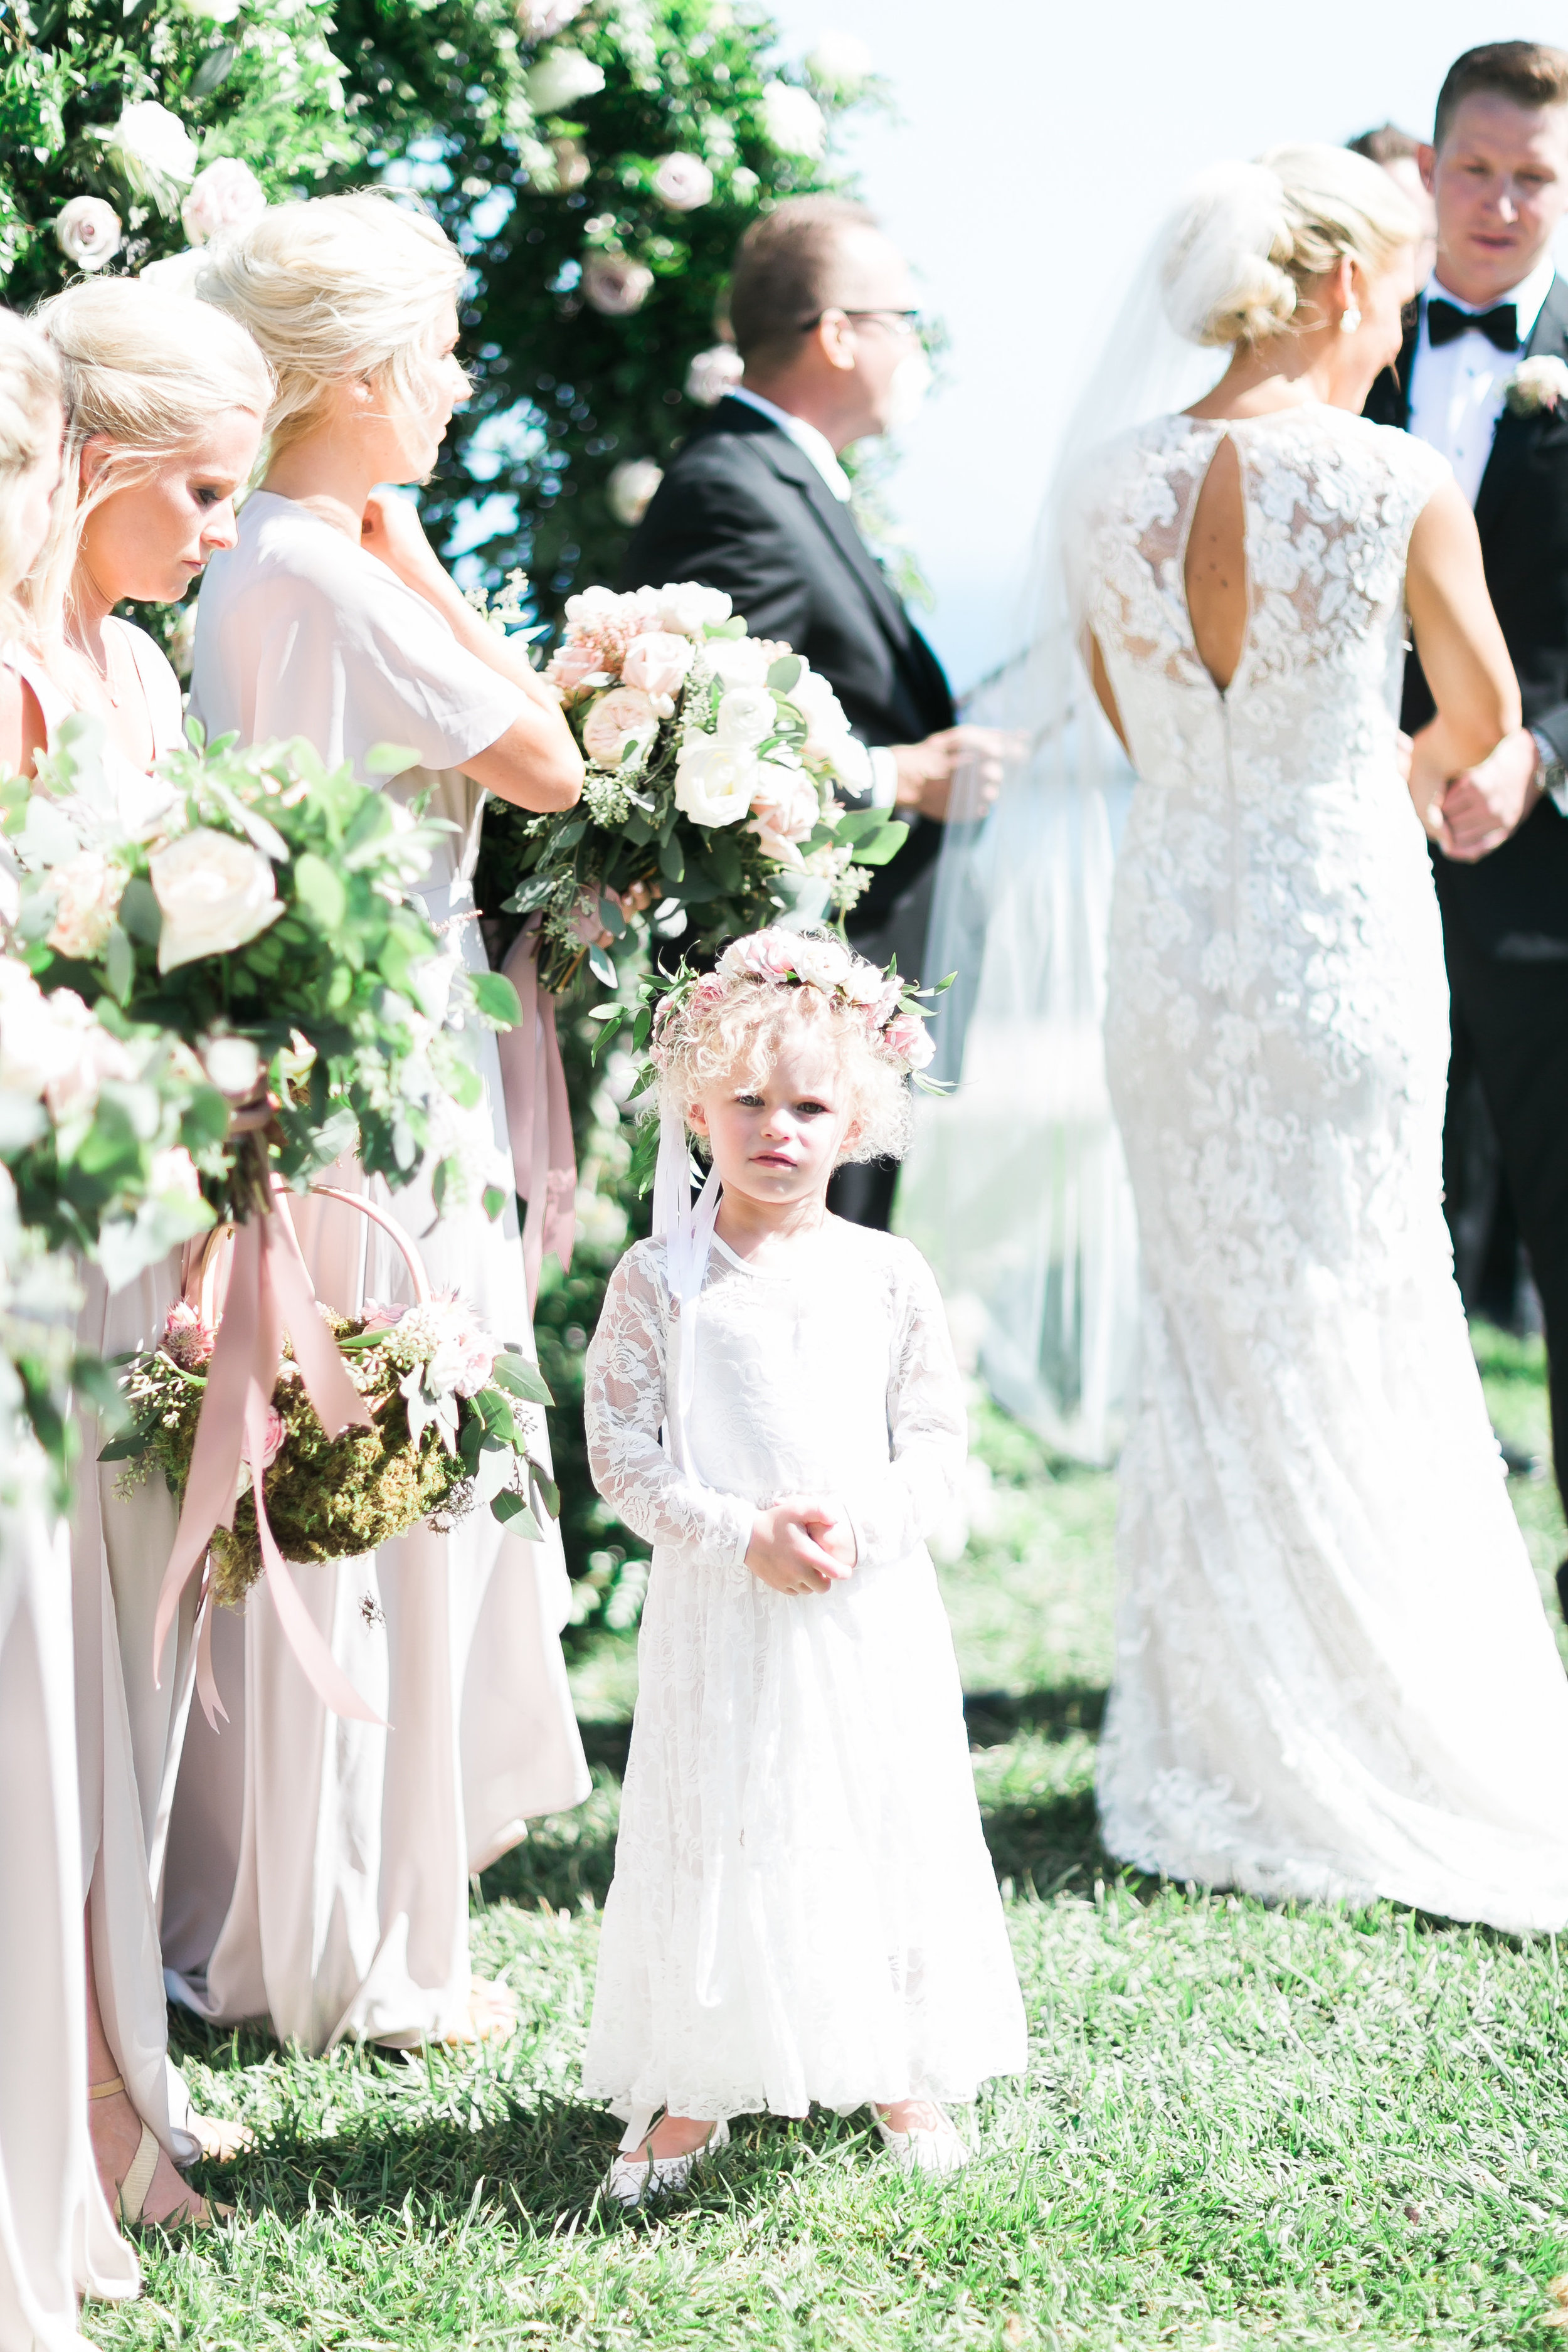 Flower girl in lace dress at wedding ceremony.   CREDITS:  Destination Wedding Planner  ANDREA EPPOLITO EVENTS  · Images by  J.ANNE P  HOTOGRAPHY  · Video  HOO FILMS  · Venue Ritz Carlton Bacara Santa Barbara ·Gown  MONIQUE LHULLIER ·Bridesmaids Dresses  SHOW ME YOUR MUMU ·Stationery  SHE PAPERIE ·Bride's Shoes  BADGLEY MISCHKA ·Hair and Makeup  TEAM HAIR AND MAKEUP · Floral  BLUE MAGNOLIA ·Linen  LA TAVOLA ·Decor Rentals  TENT MERCHANT ·Calligraphy  EBB ·Lighting  FIVE STAR AV ·Ice Cream Station  MCCONNELL'S ICE CREAM